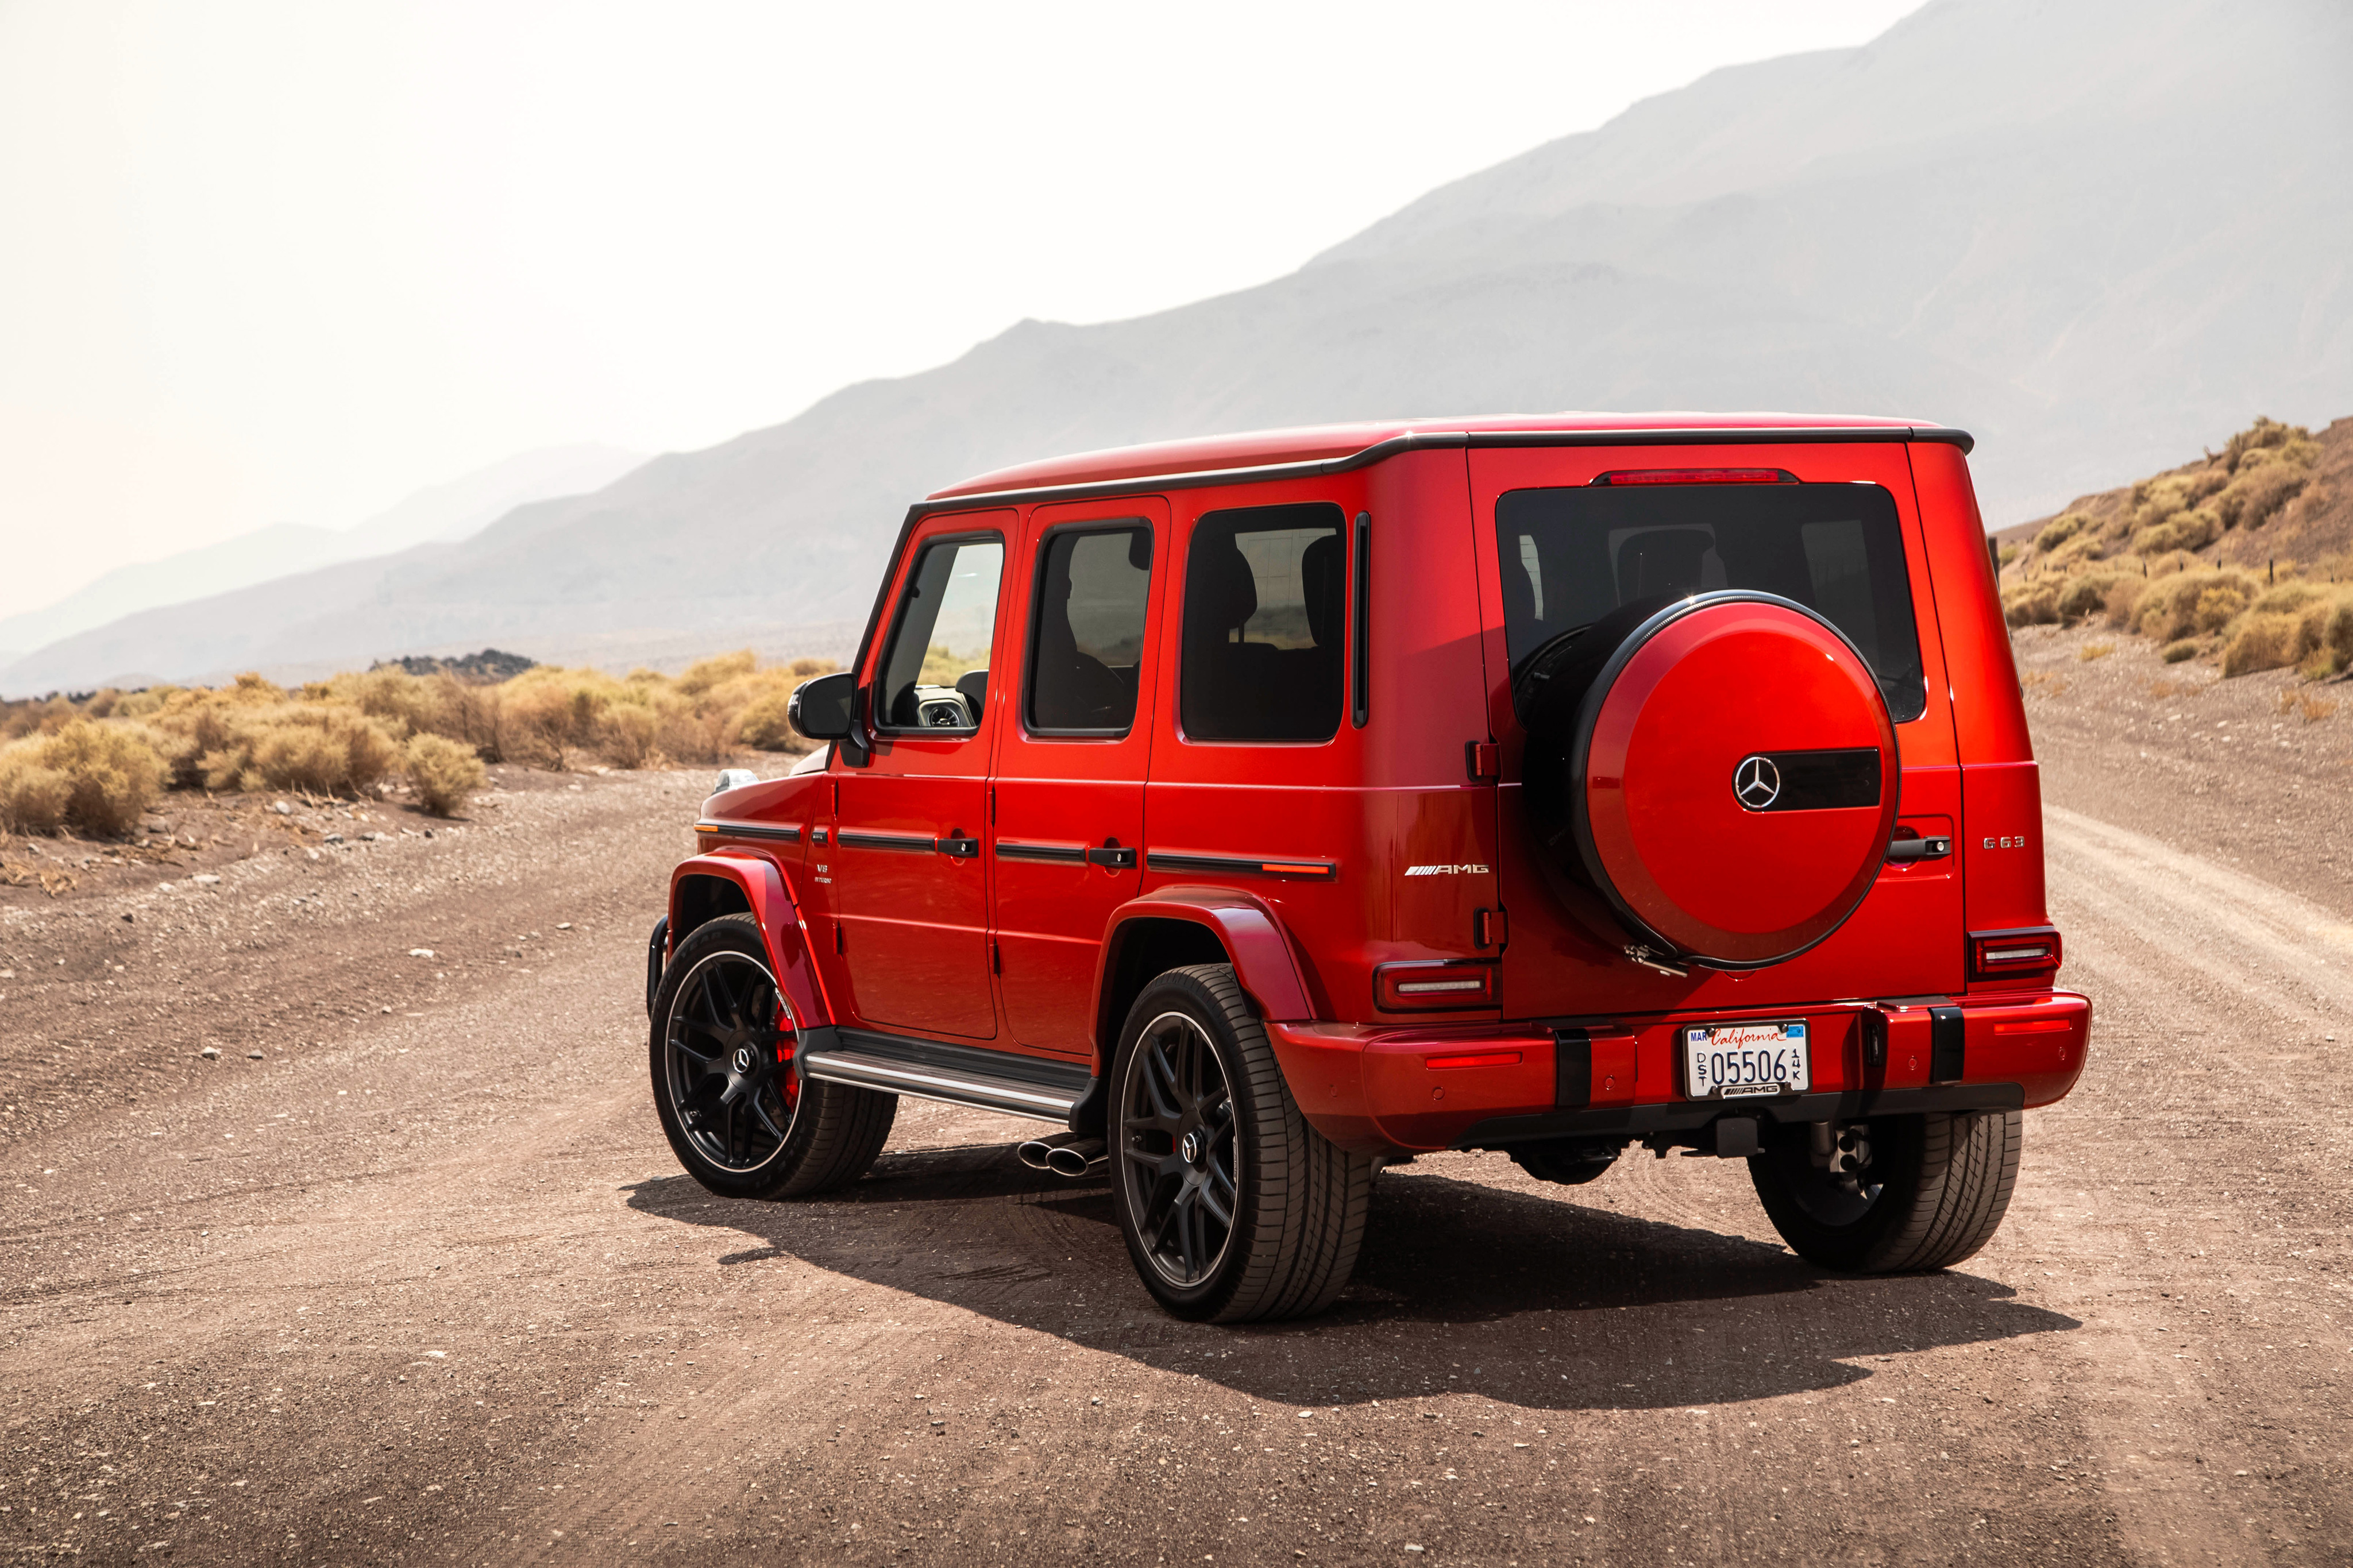 2018 Mercedes AMG G 63 Rear, HD Cars, 4k Wallpapers ...